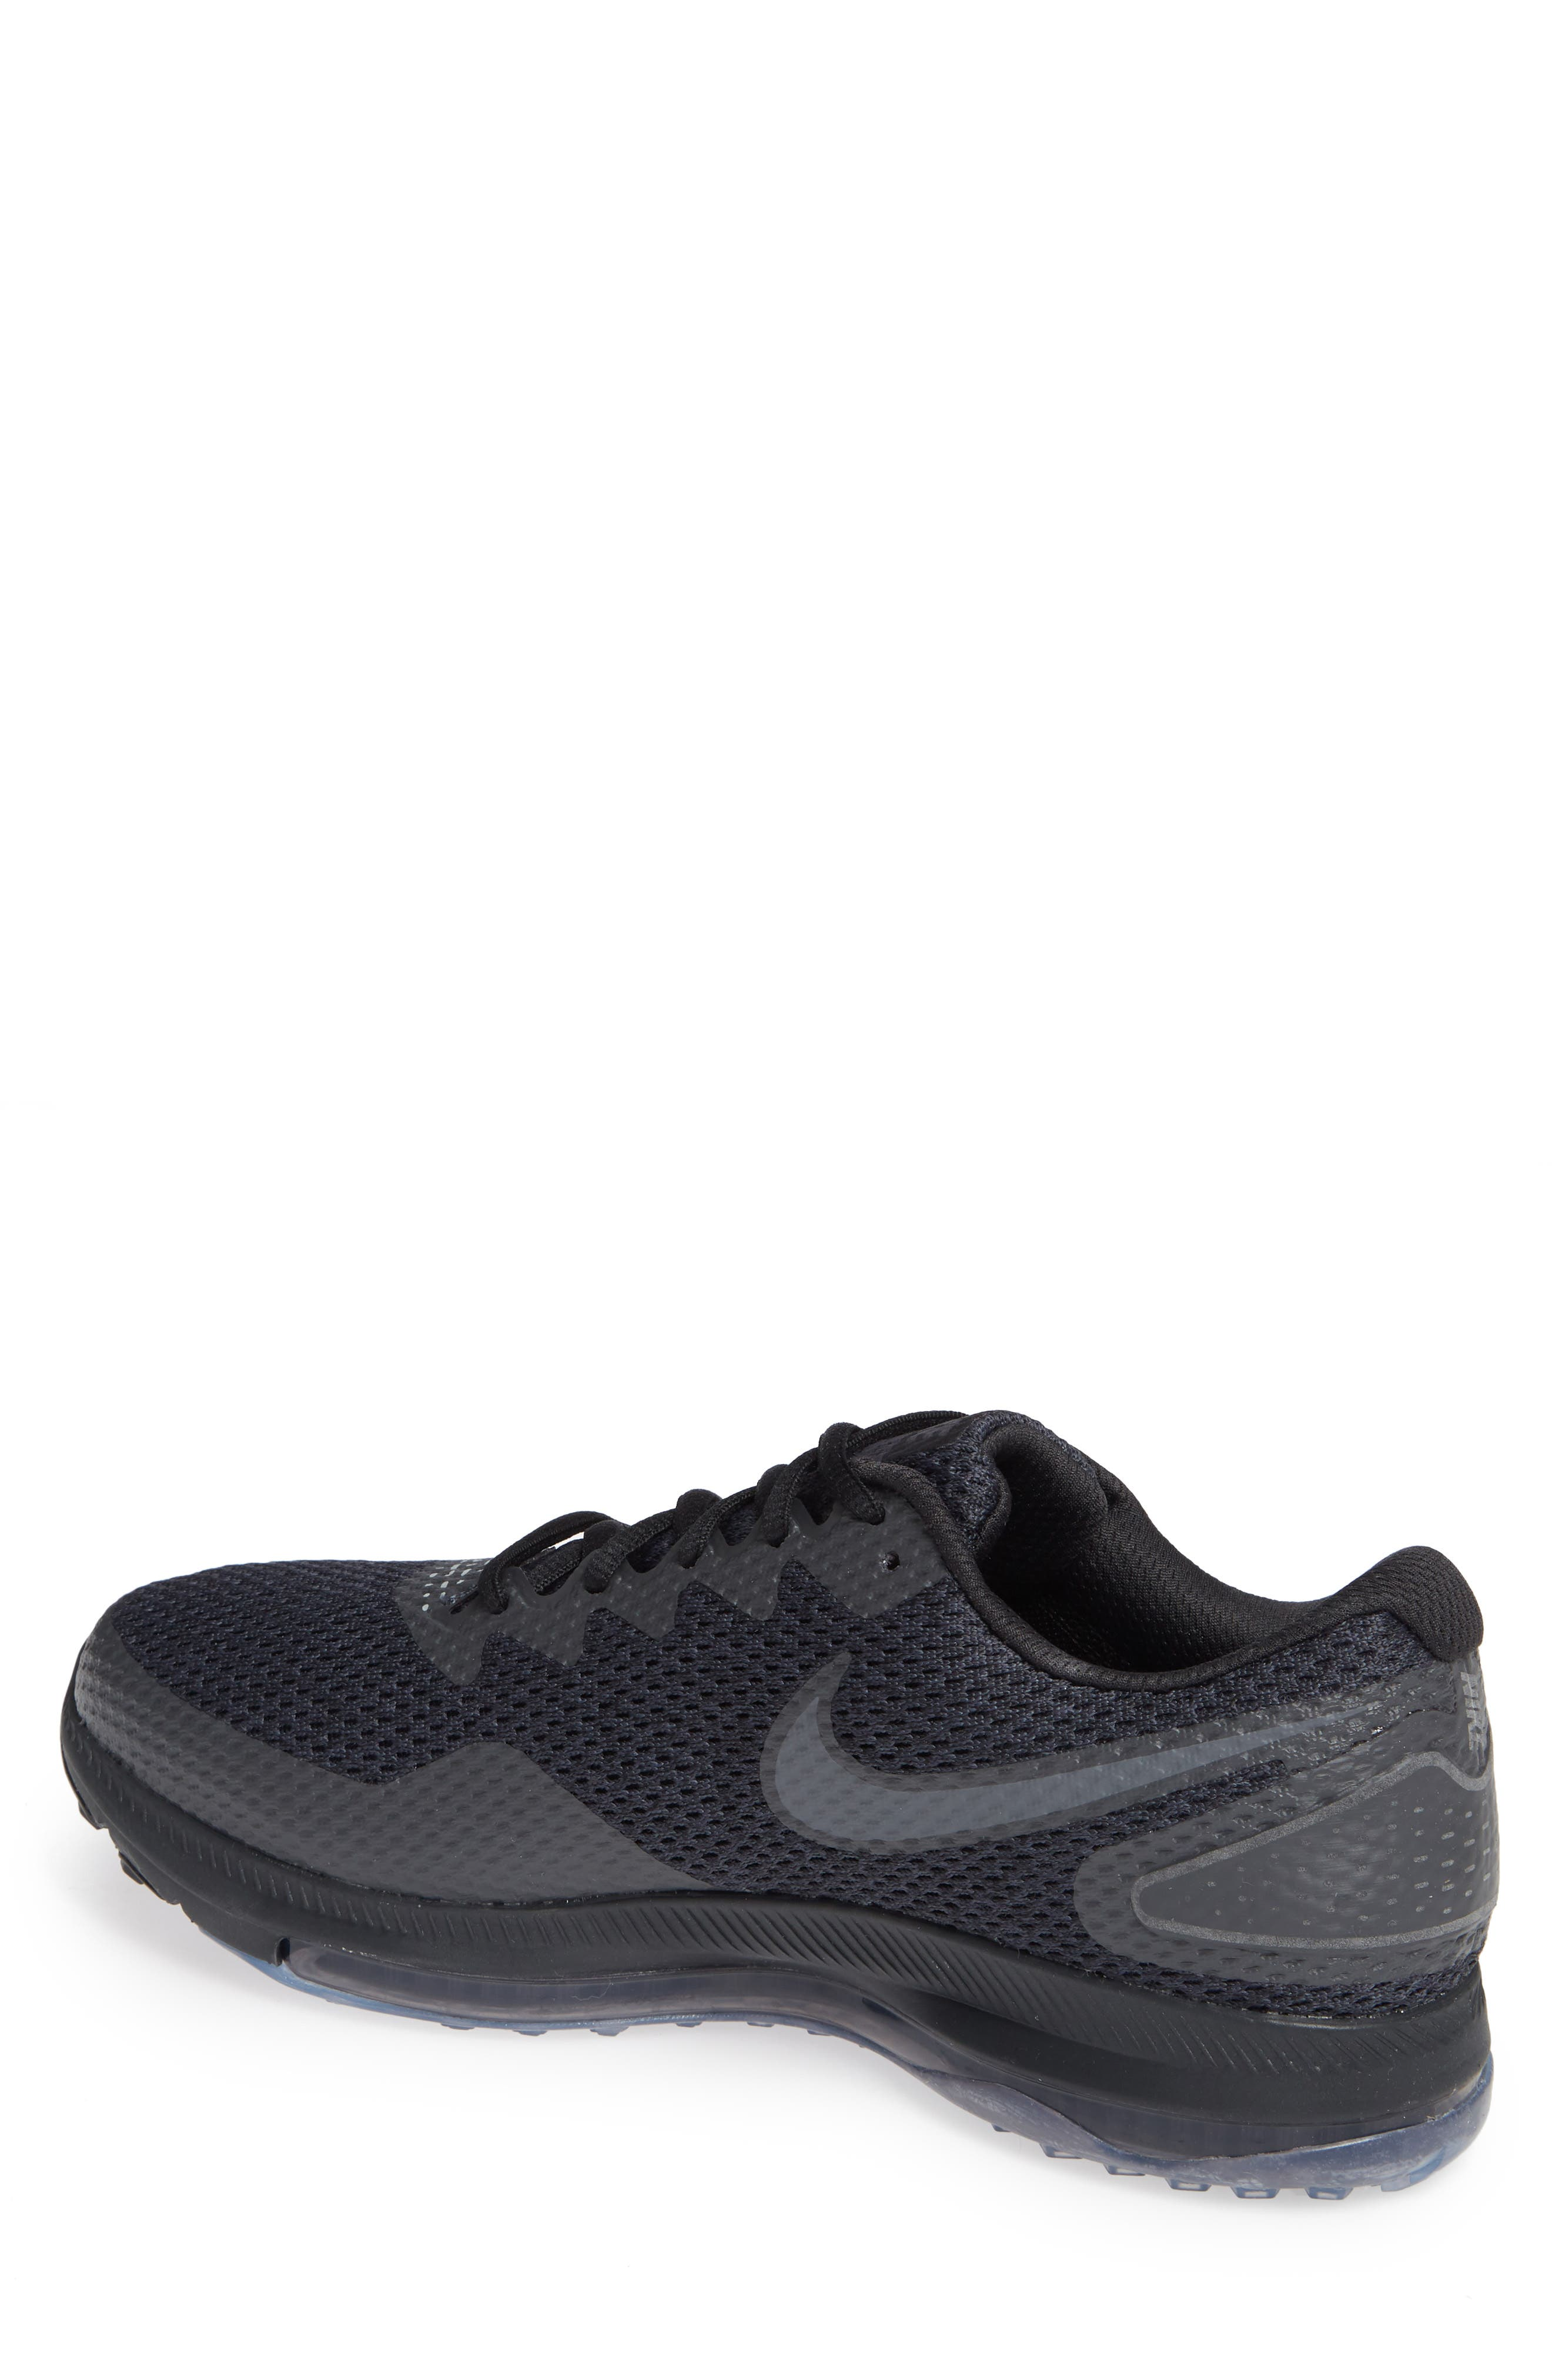 Zoom All Out Low 2 Running Shoe,                             Alternate thumbnail 2, color,                             Black/ Dark Grey/ Anthracite